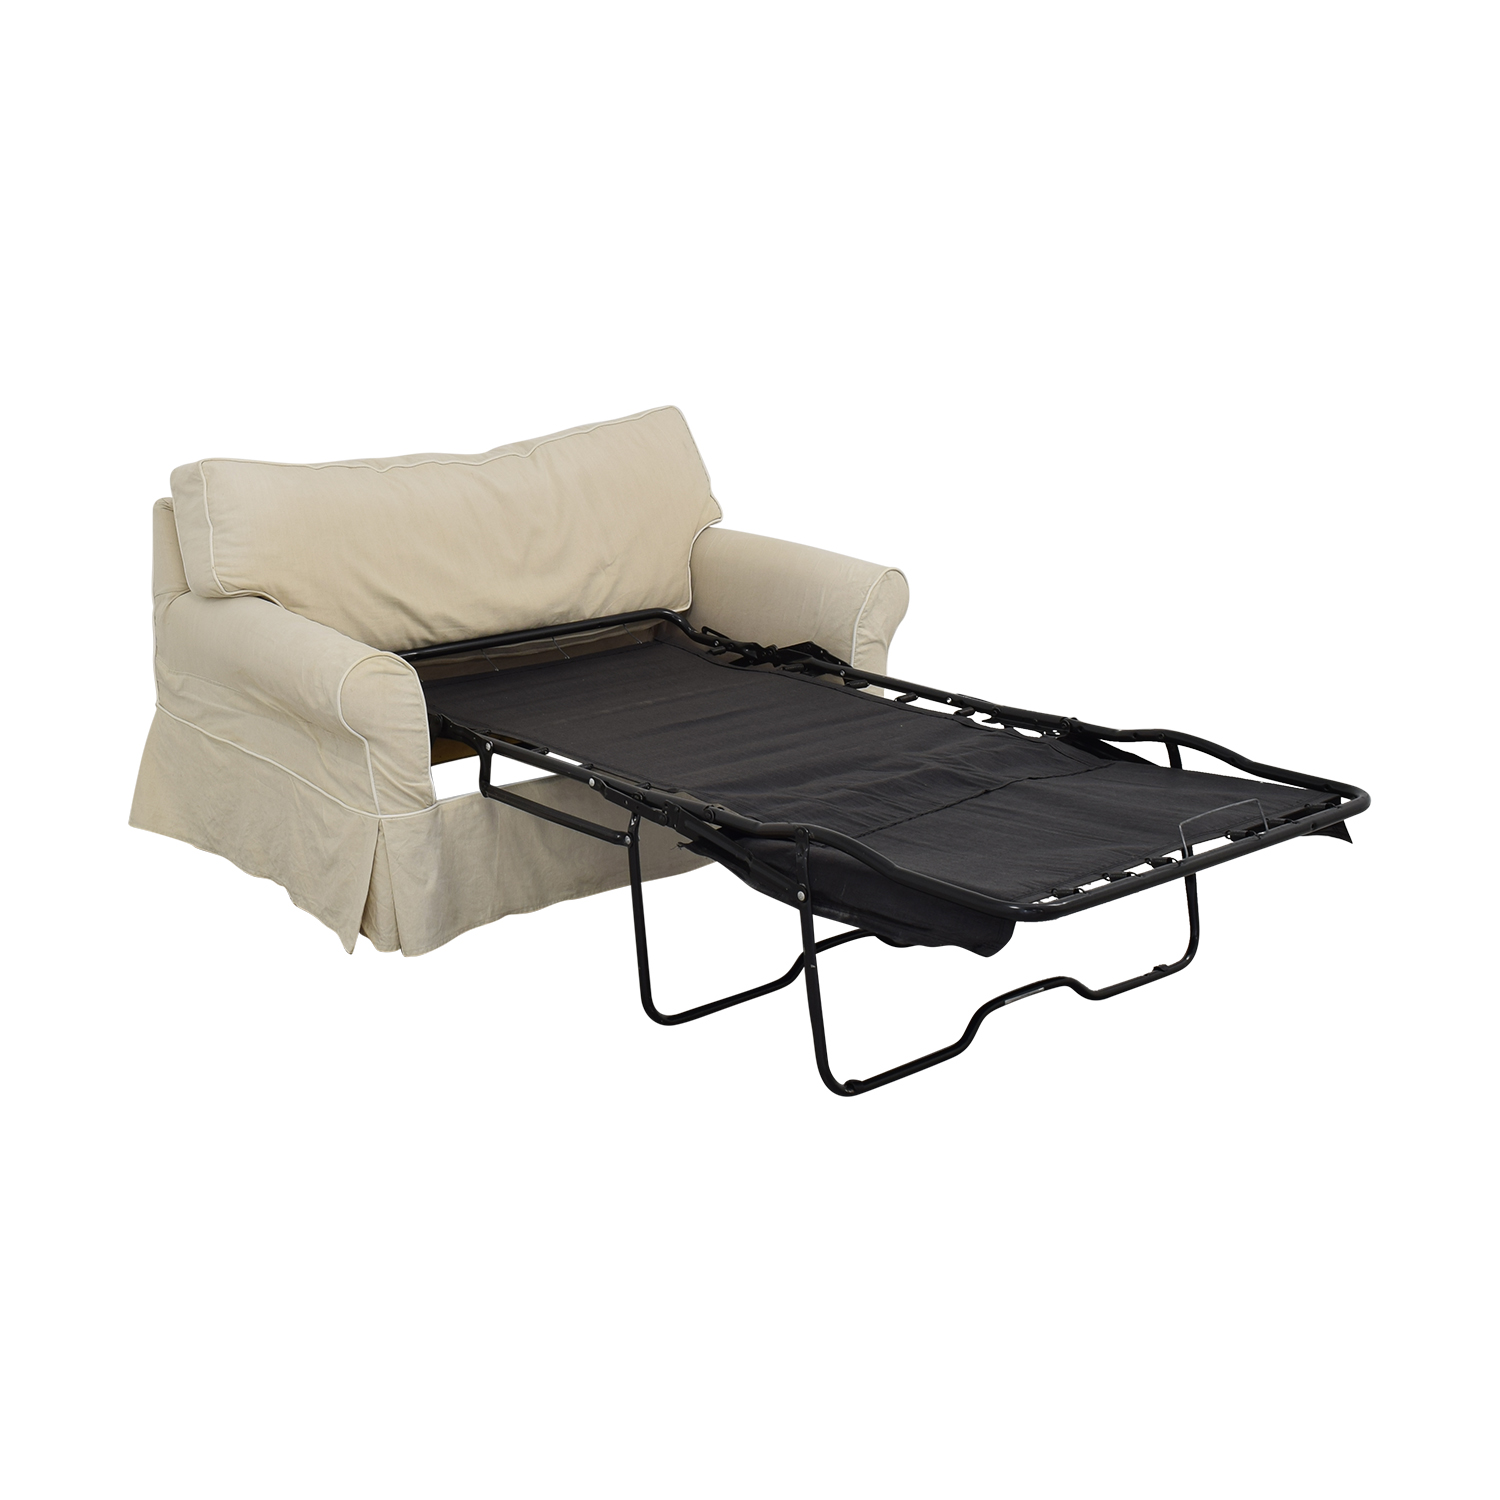 Crate & Barrel Crate & Barrel Rolled Arm Loveseat Twin Sleeper coupon